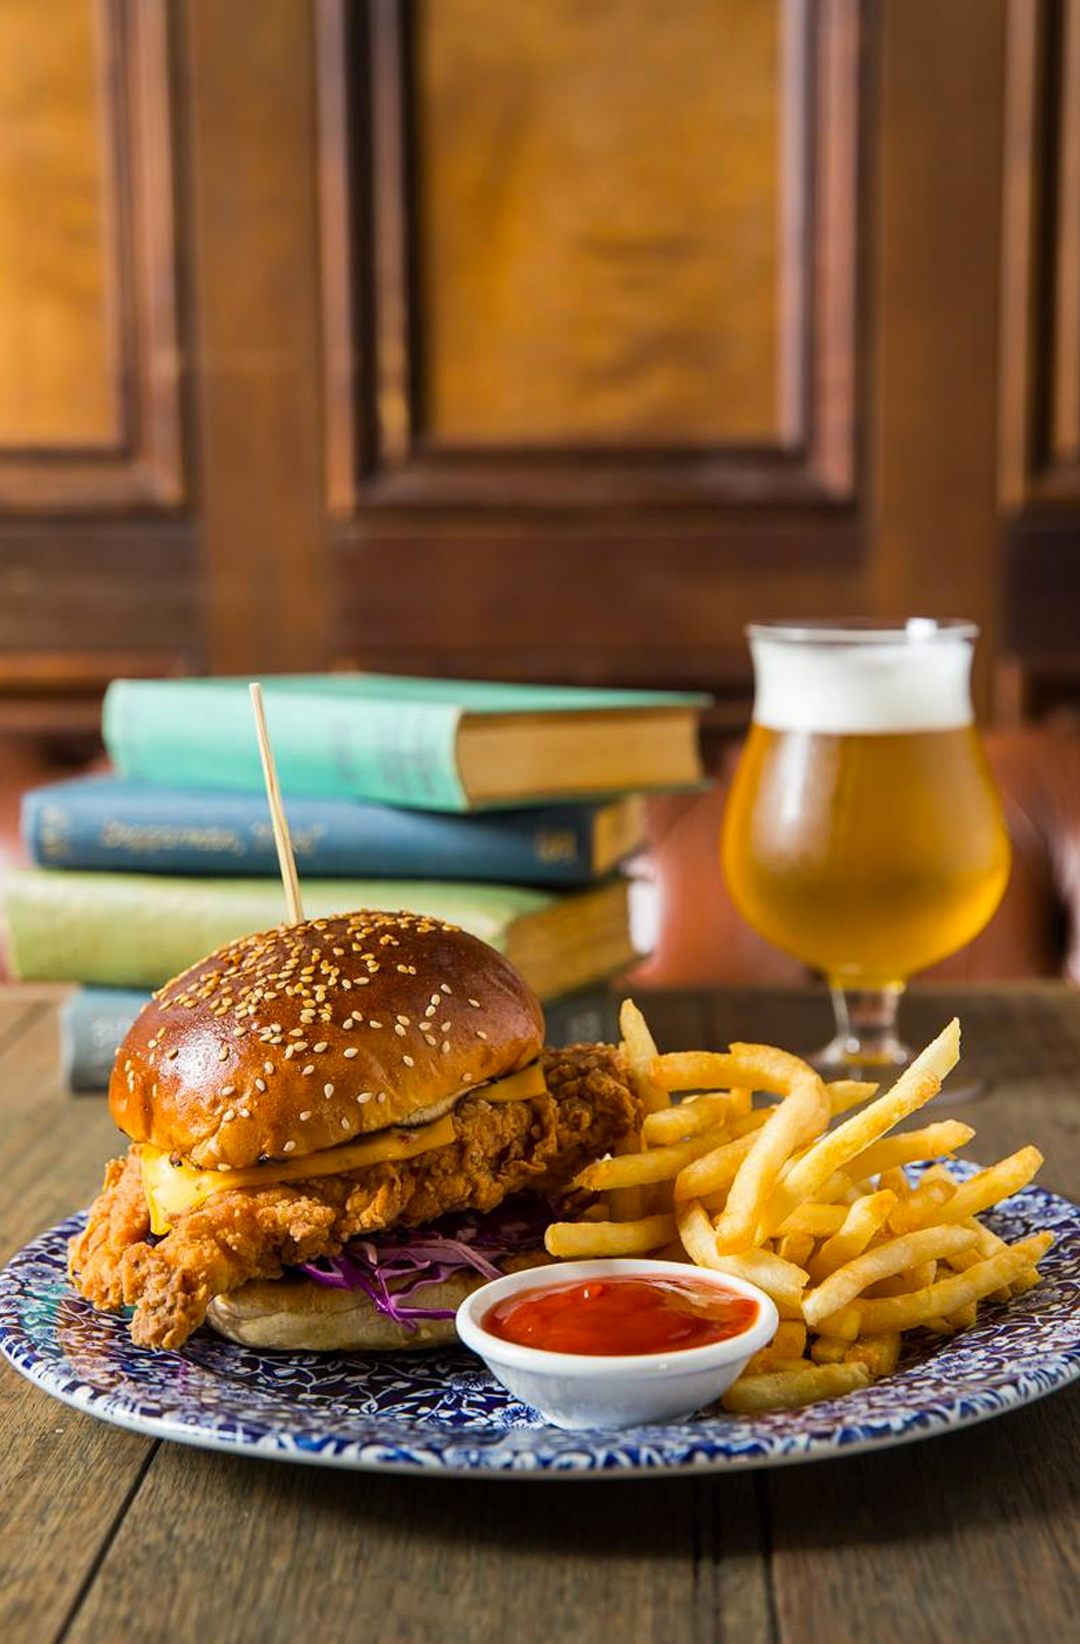 burger and beer on table